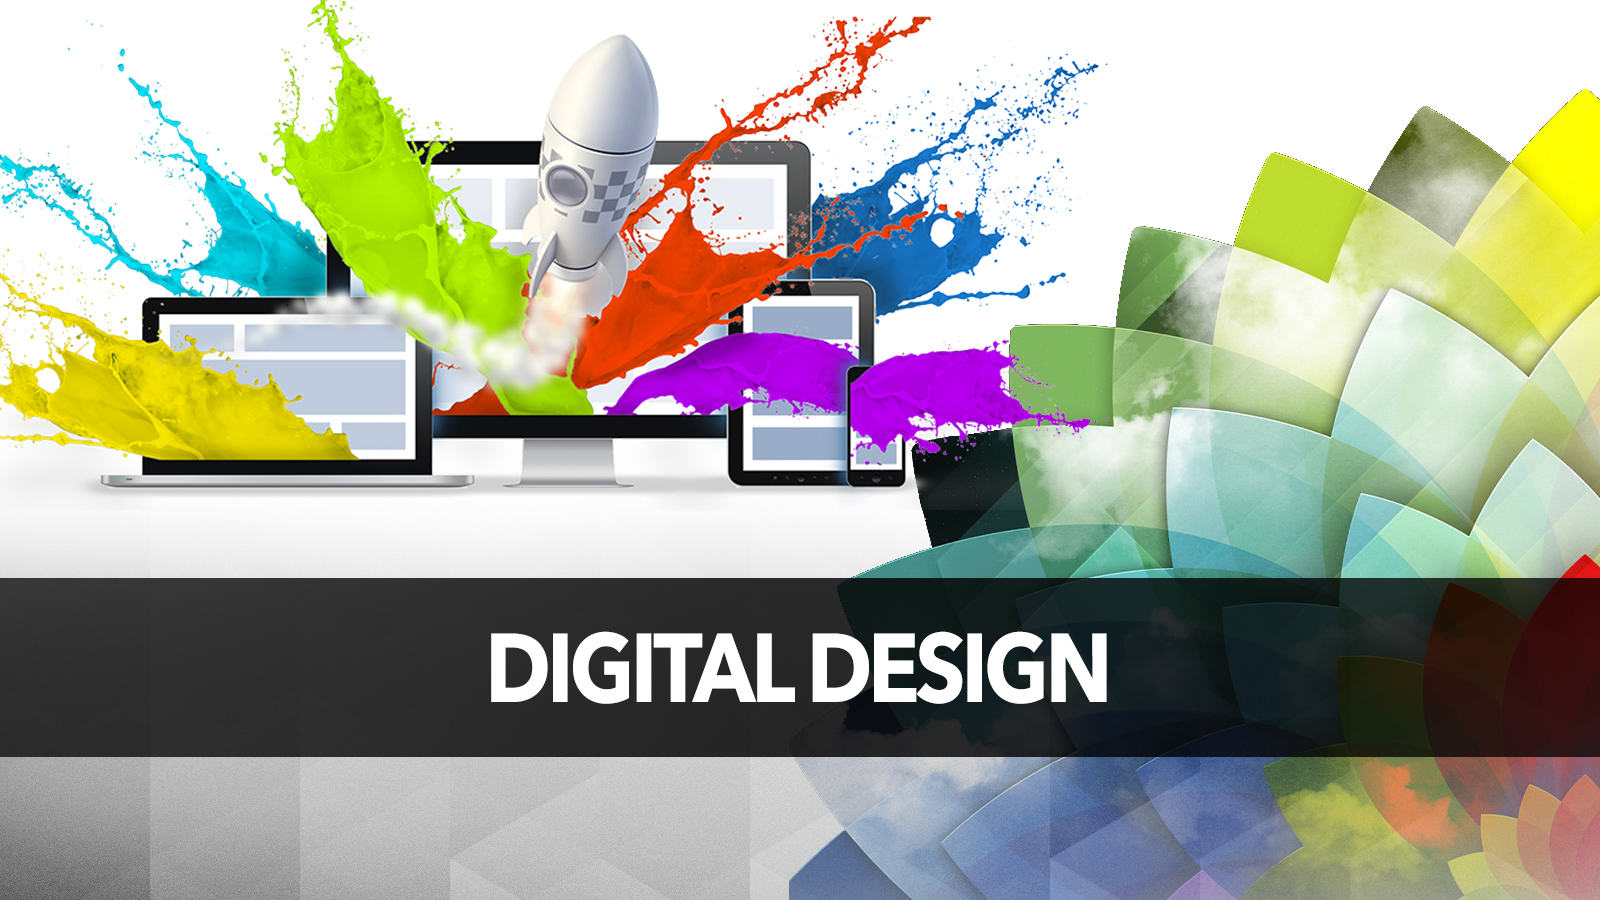 A digital depiction of digital design